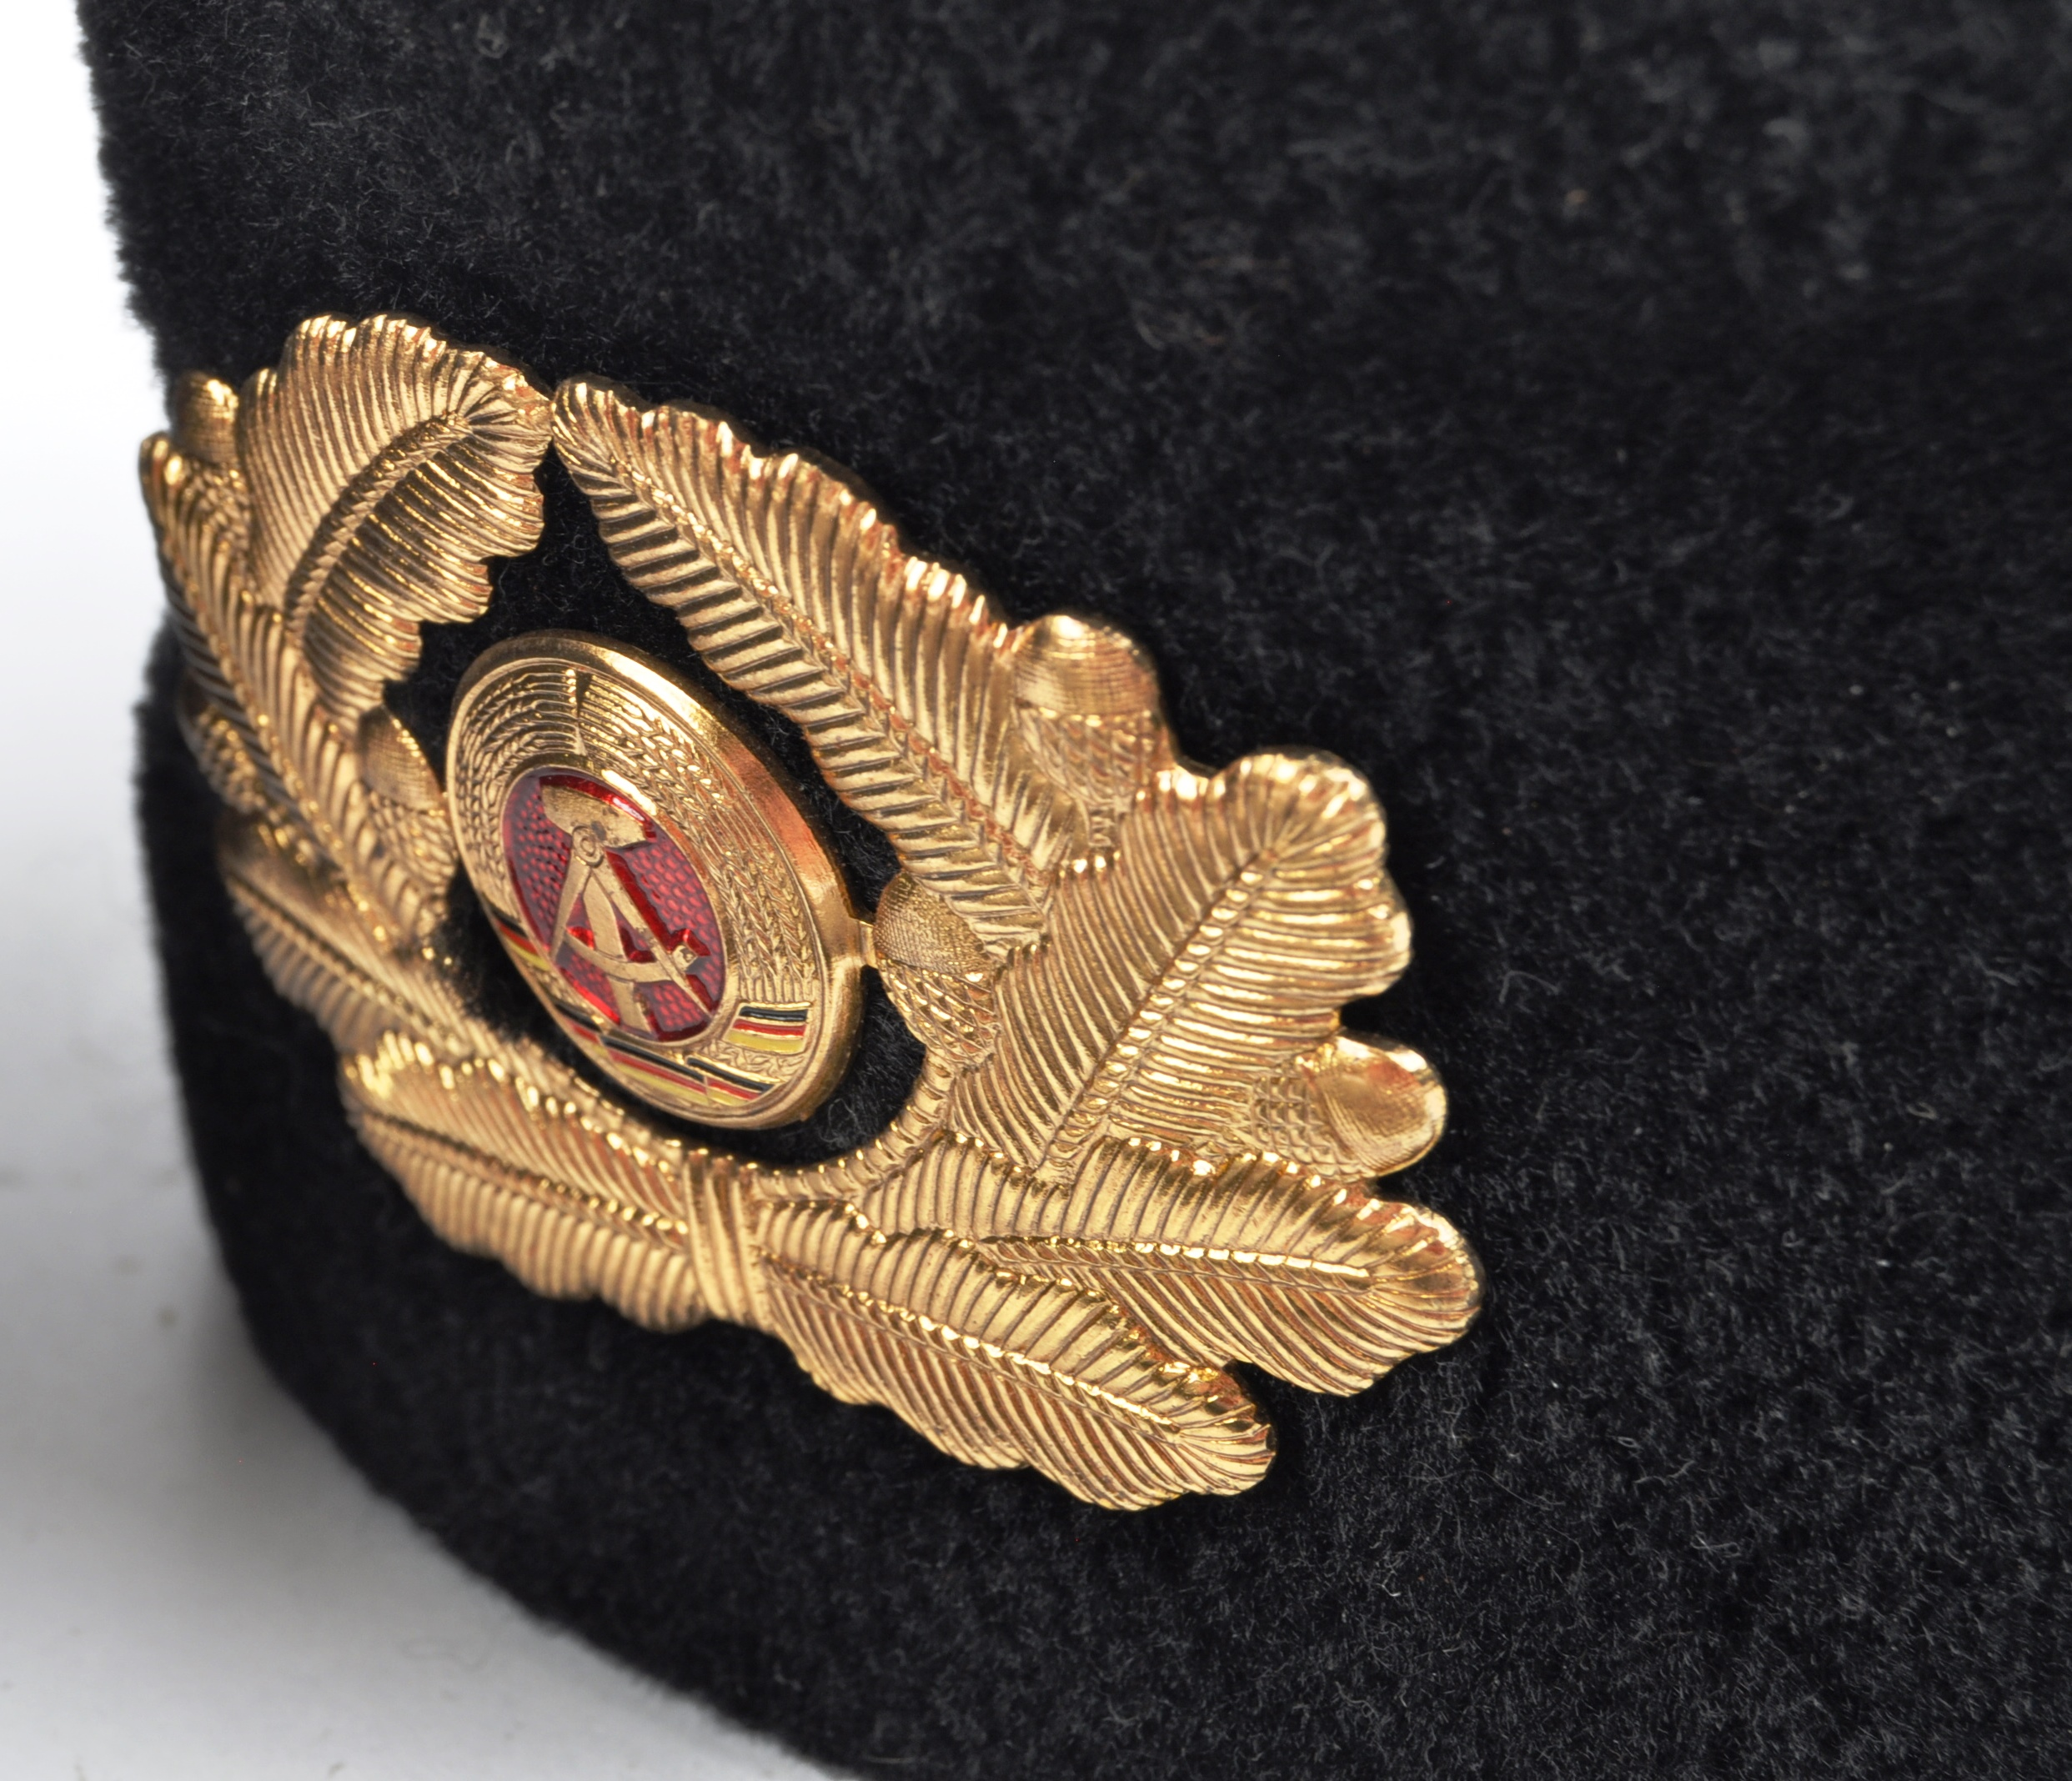 COLLECTION ASSORTED EAST GERMAN NATIONAL PEOPLE'S ARMY HATS - Image 2 of 11